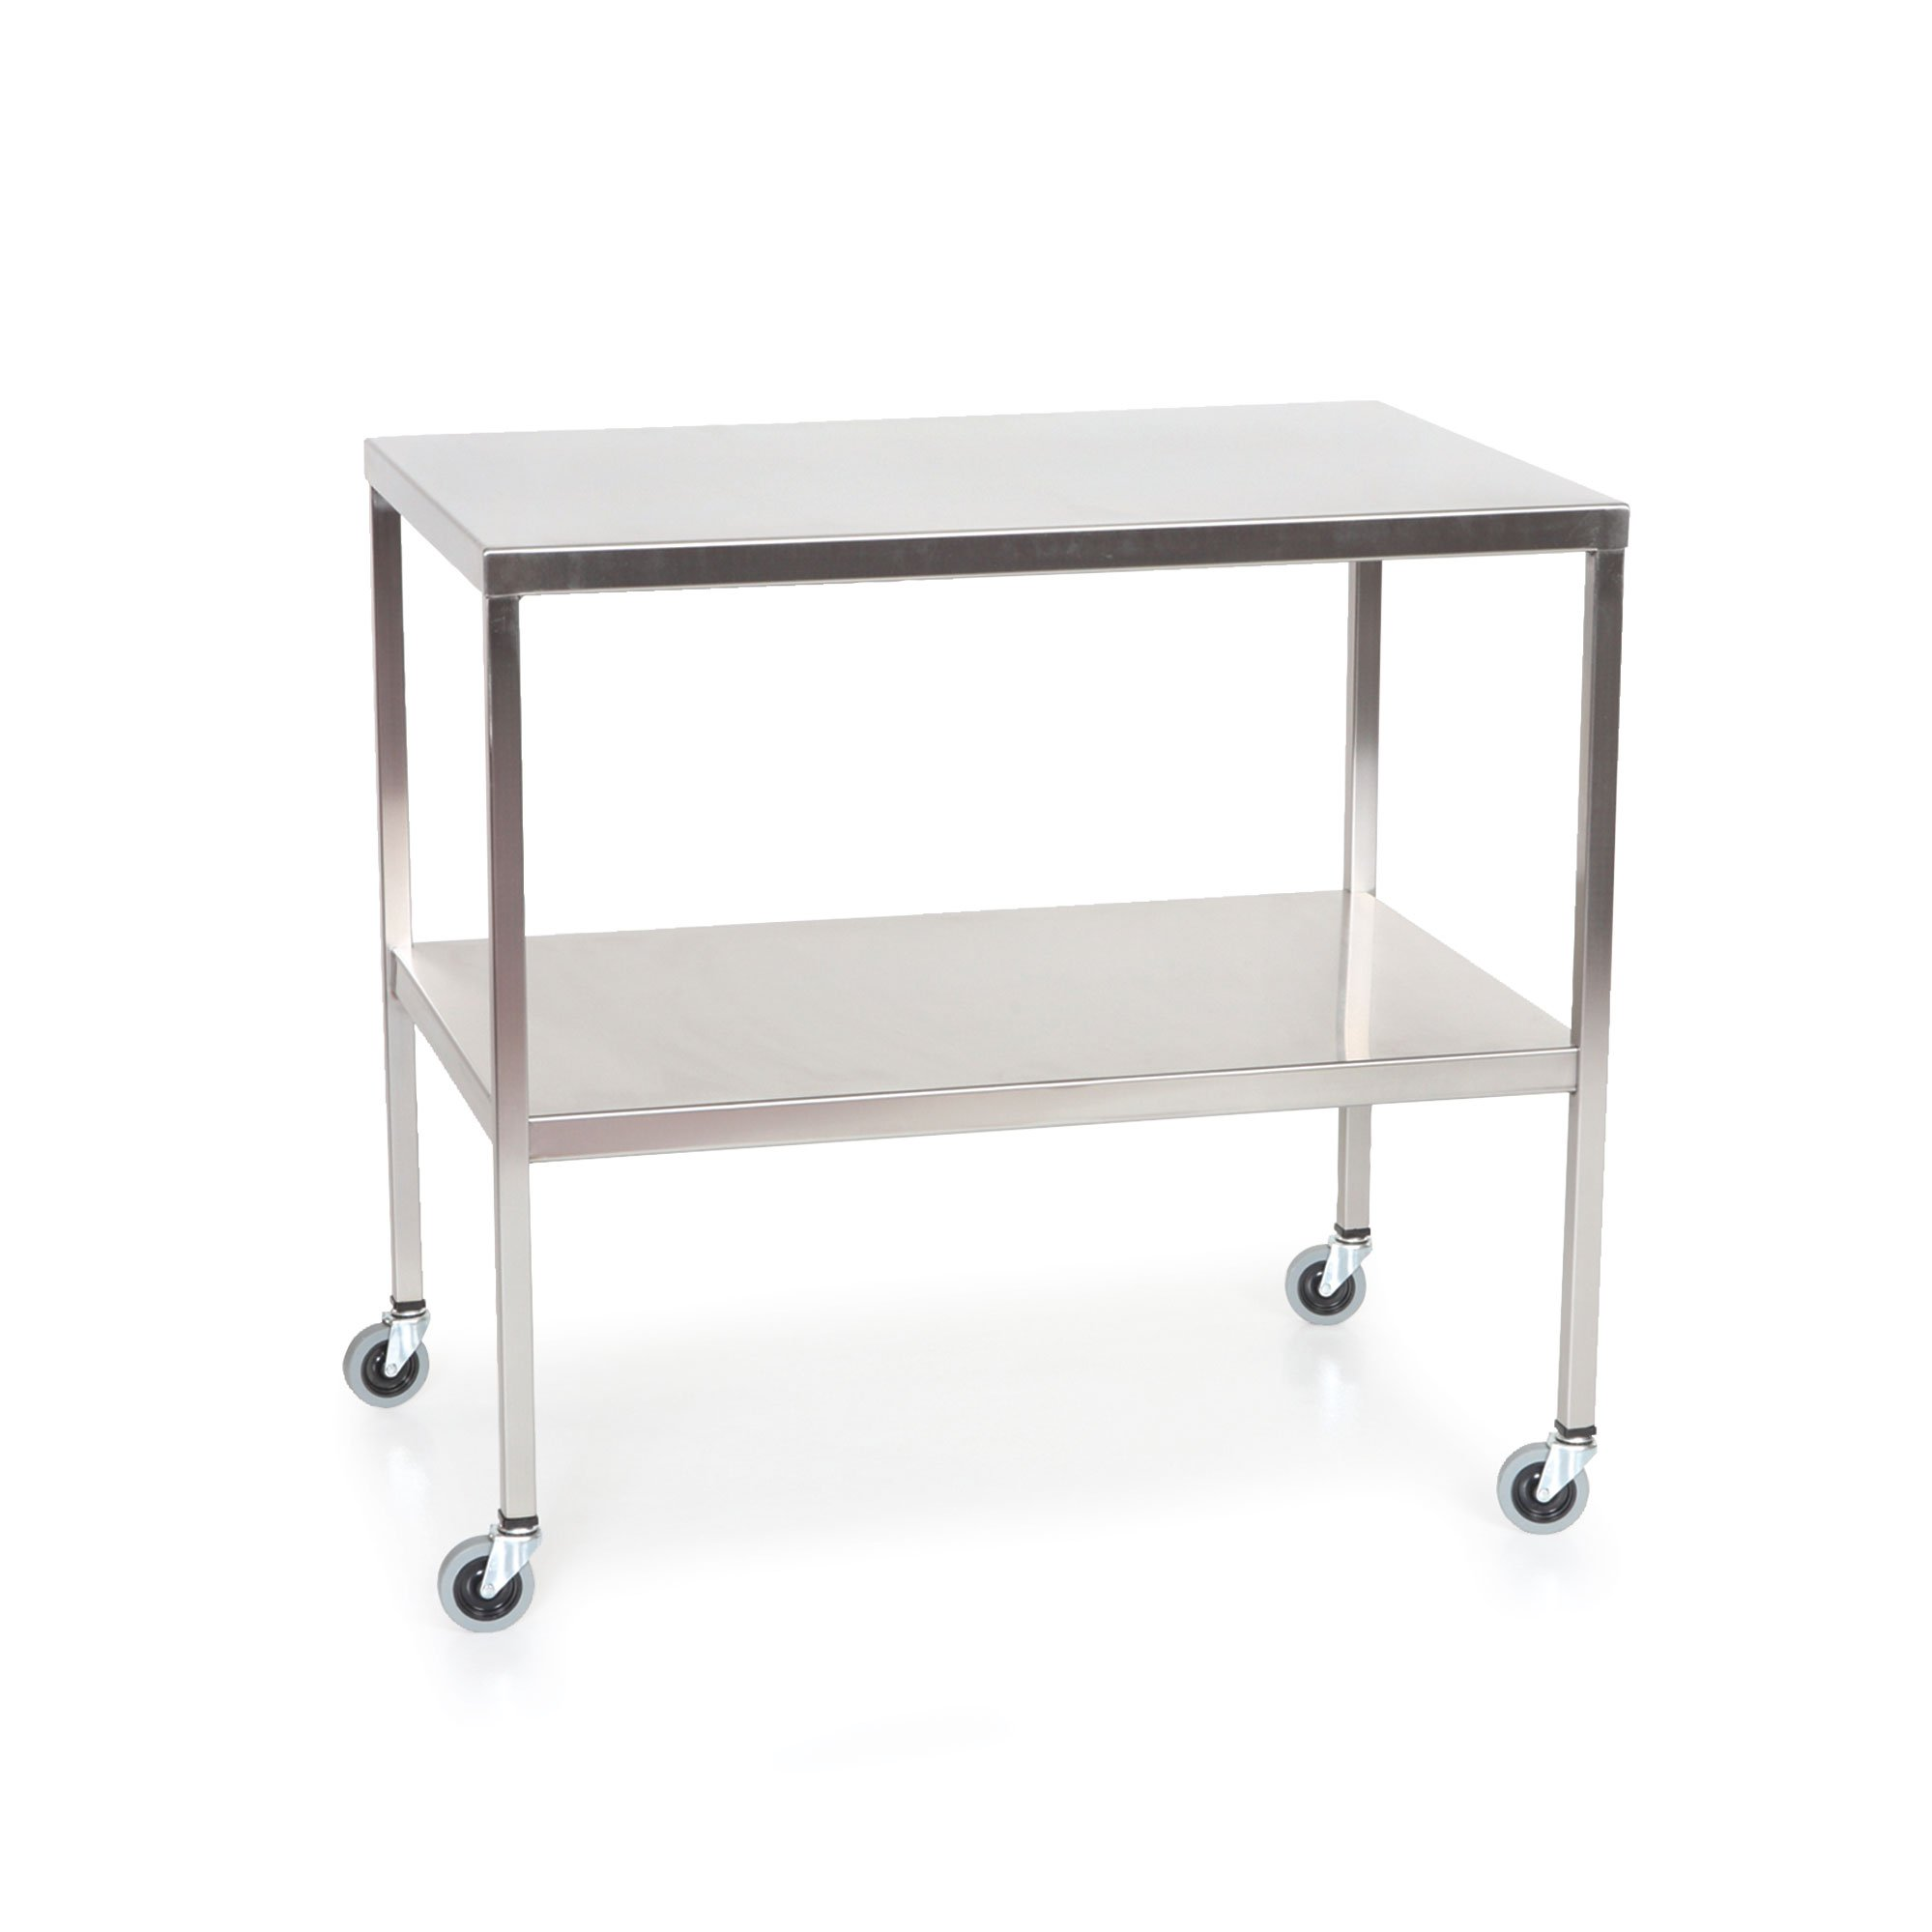 Stainless Steel Instrument Table with Shelf 36''L x 24''W x 34''H